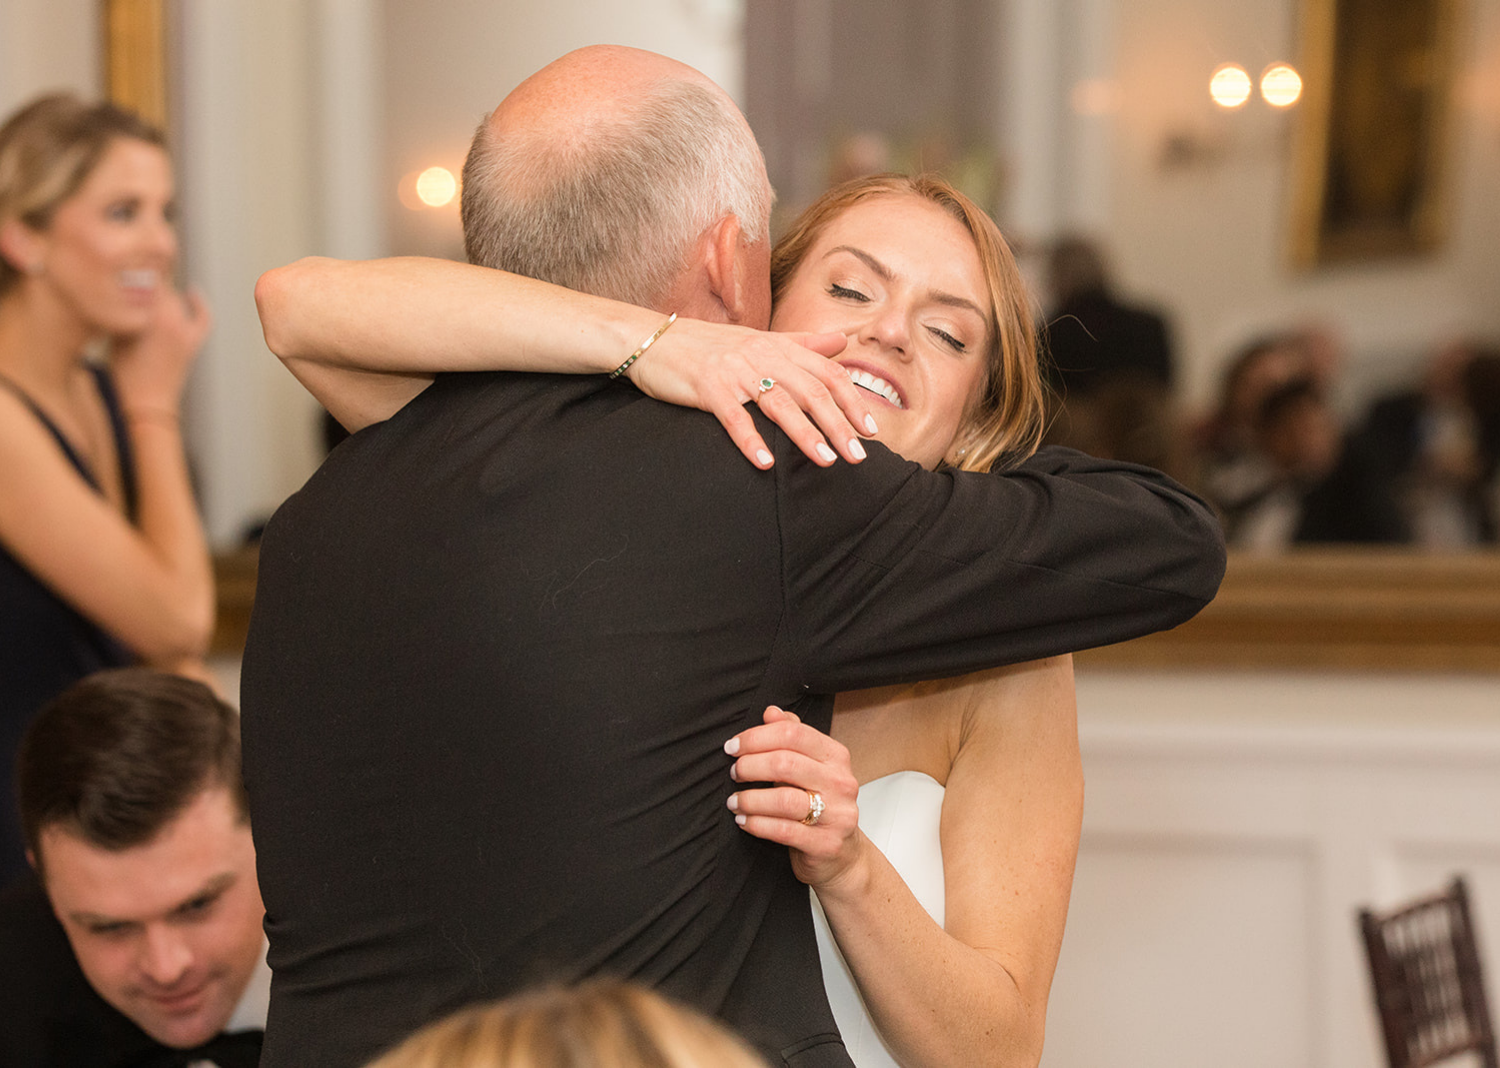 bride and her father share a hug